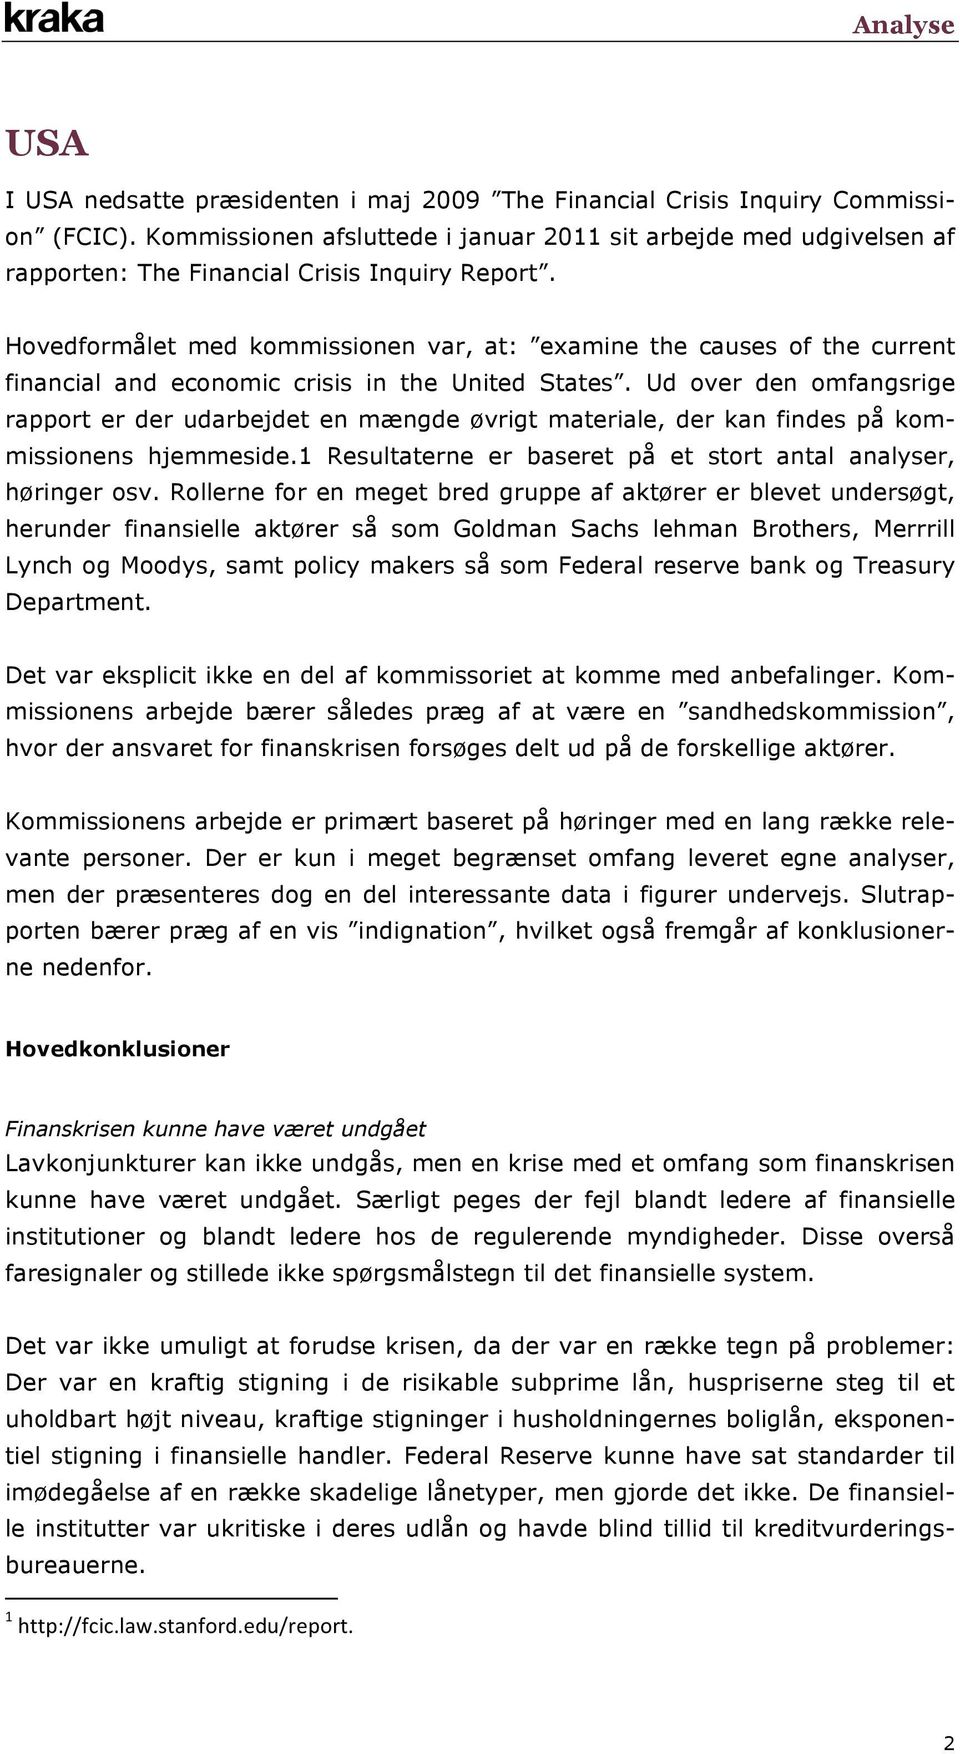 Hovedformålet med kommissionen var, at: examine the causes of the current financial and economic crisis in the United States.